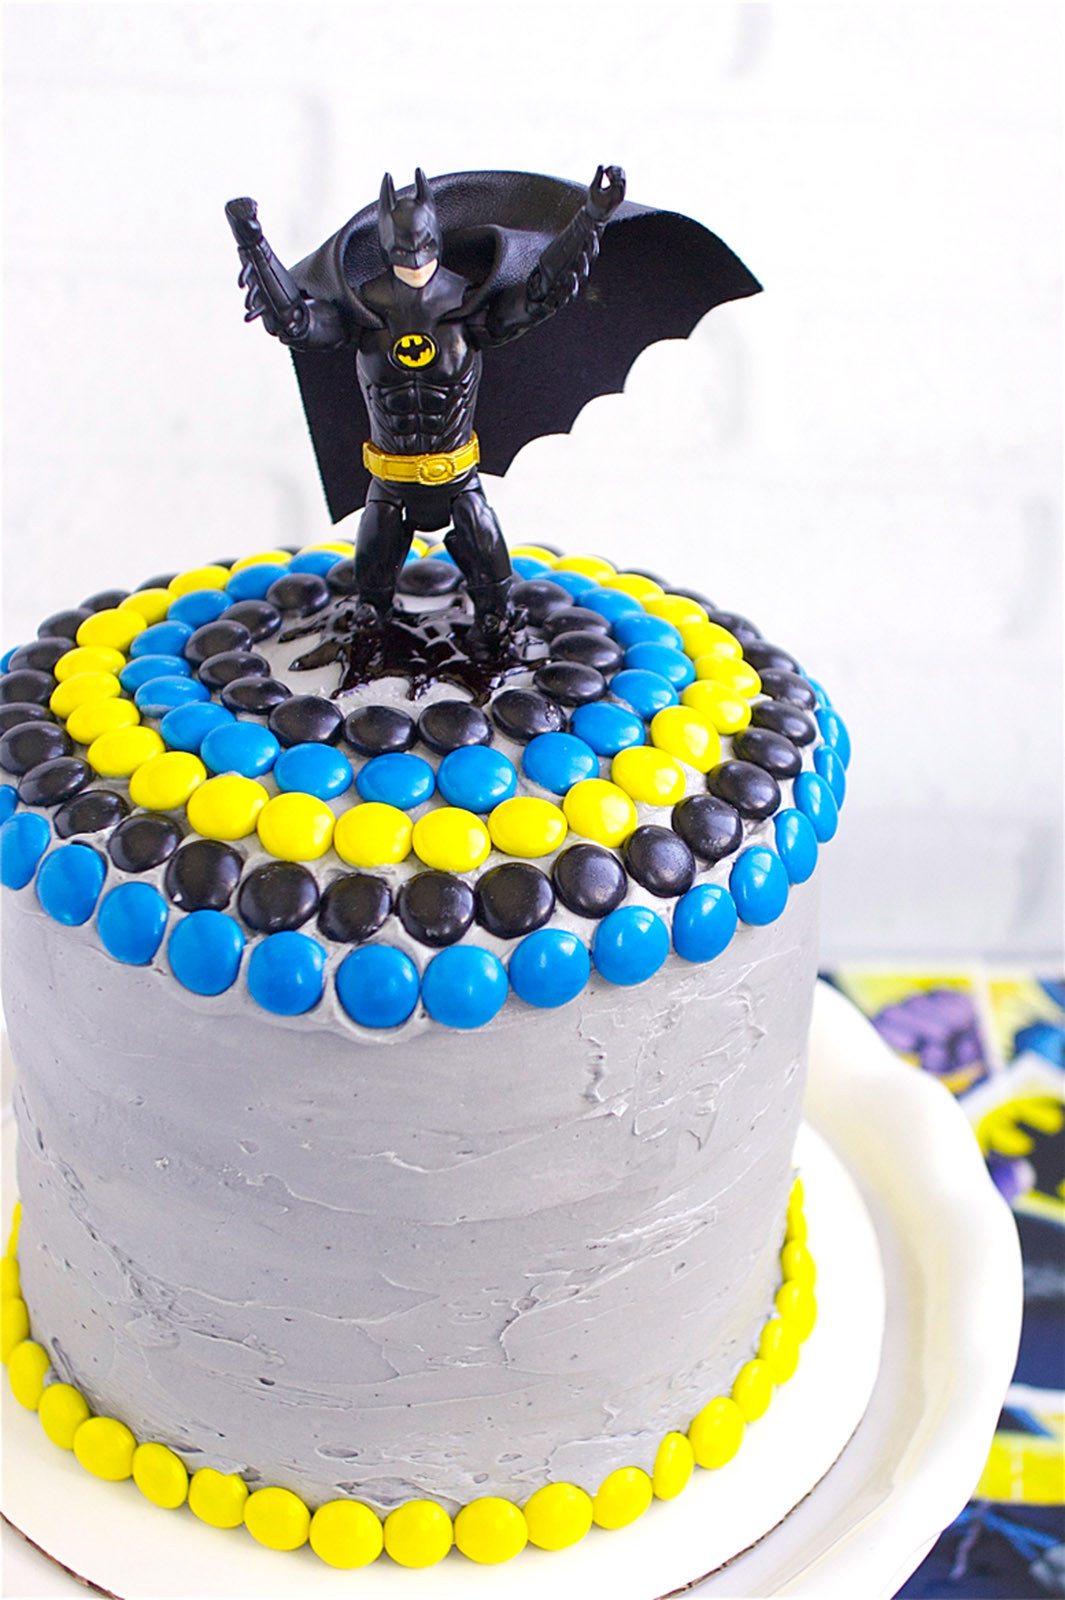 Best ideas about Batman Birthday Cake . Save or Pin Batman Cake Now.